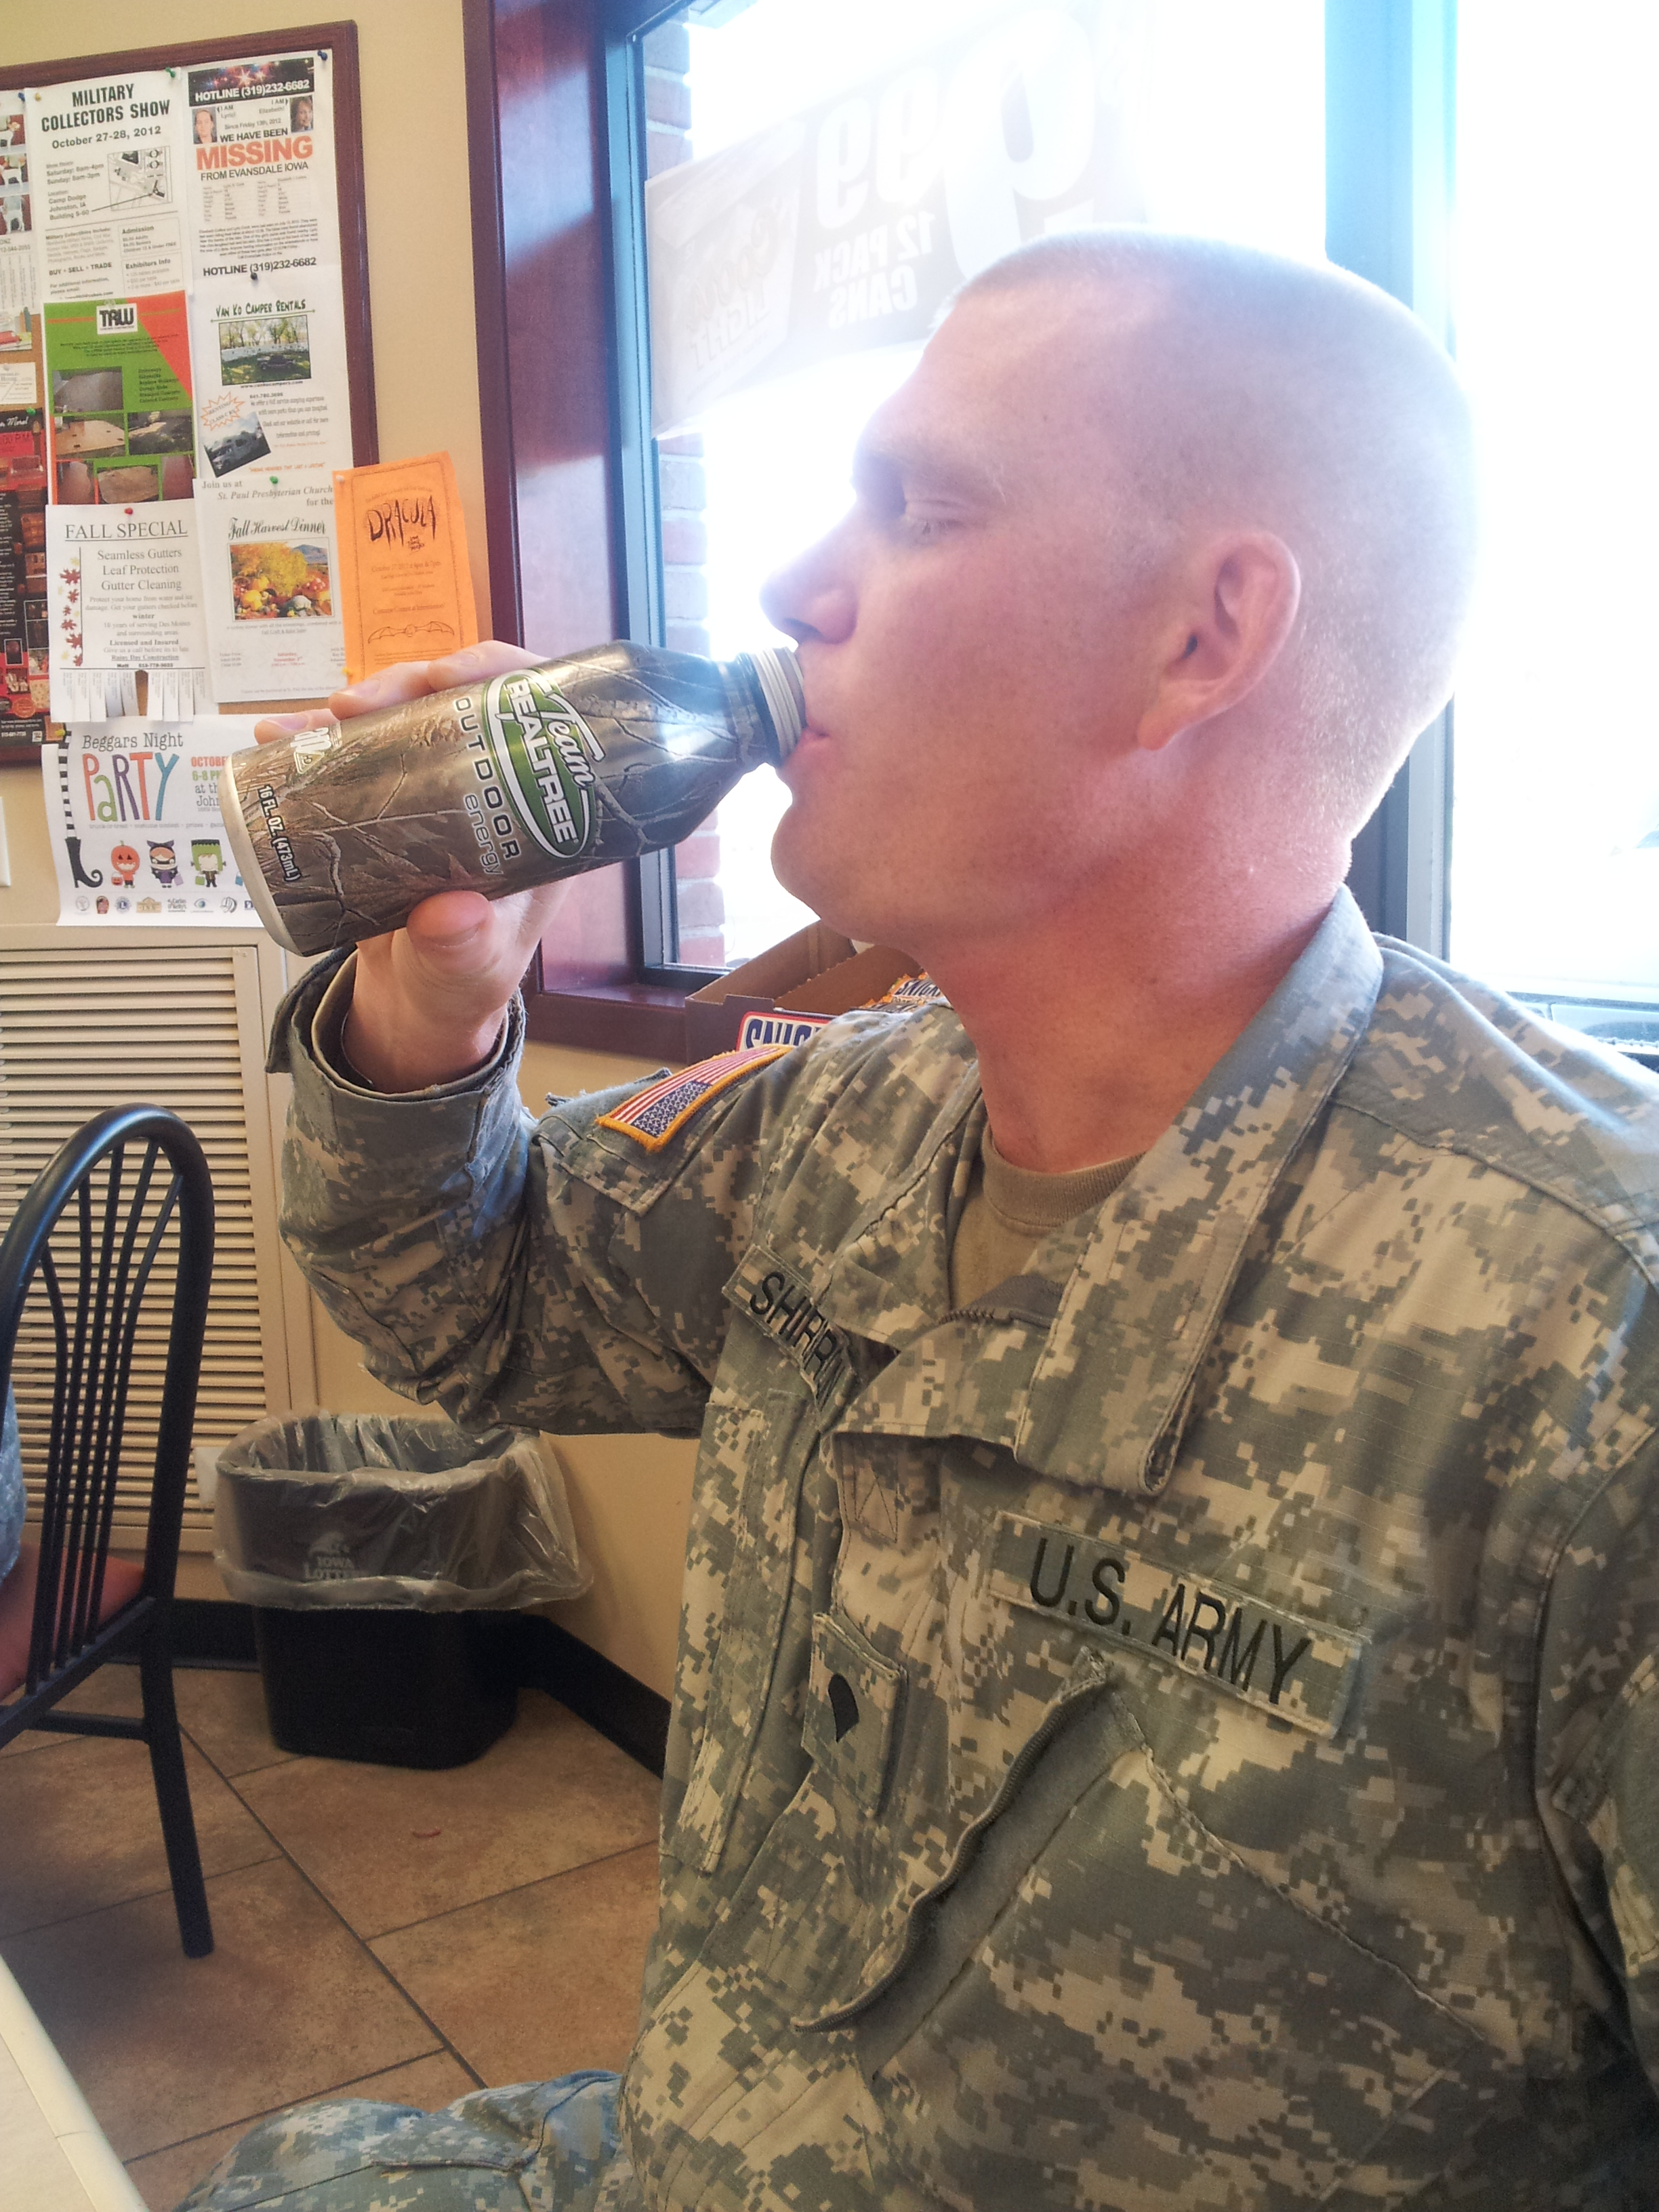 Spc. Shirbroun drinking his Realtree Energy Drink to keep him going during drill.